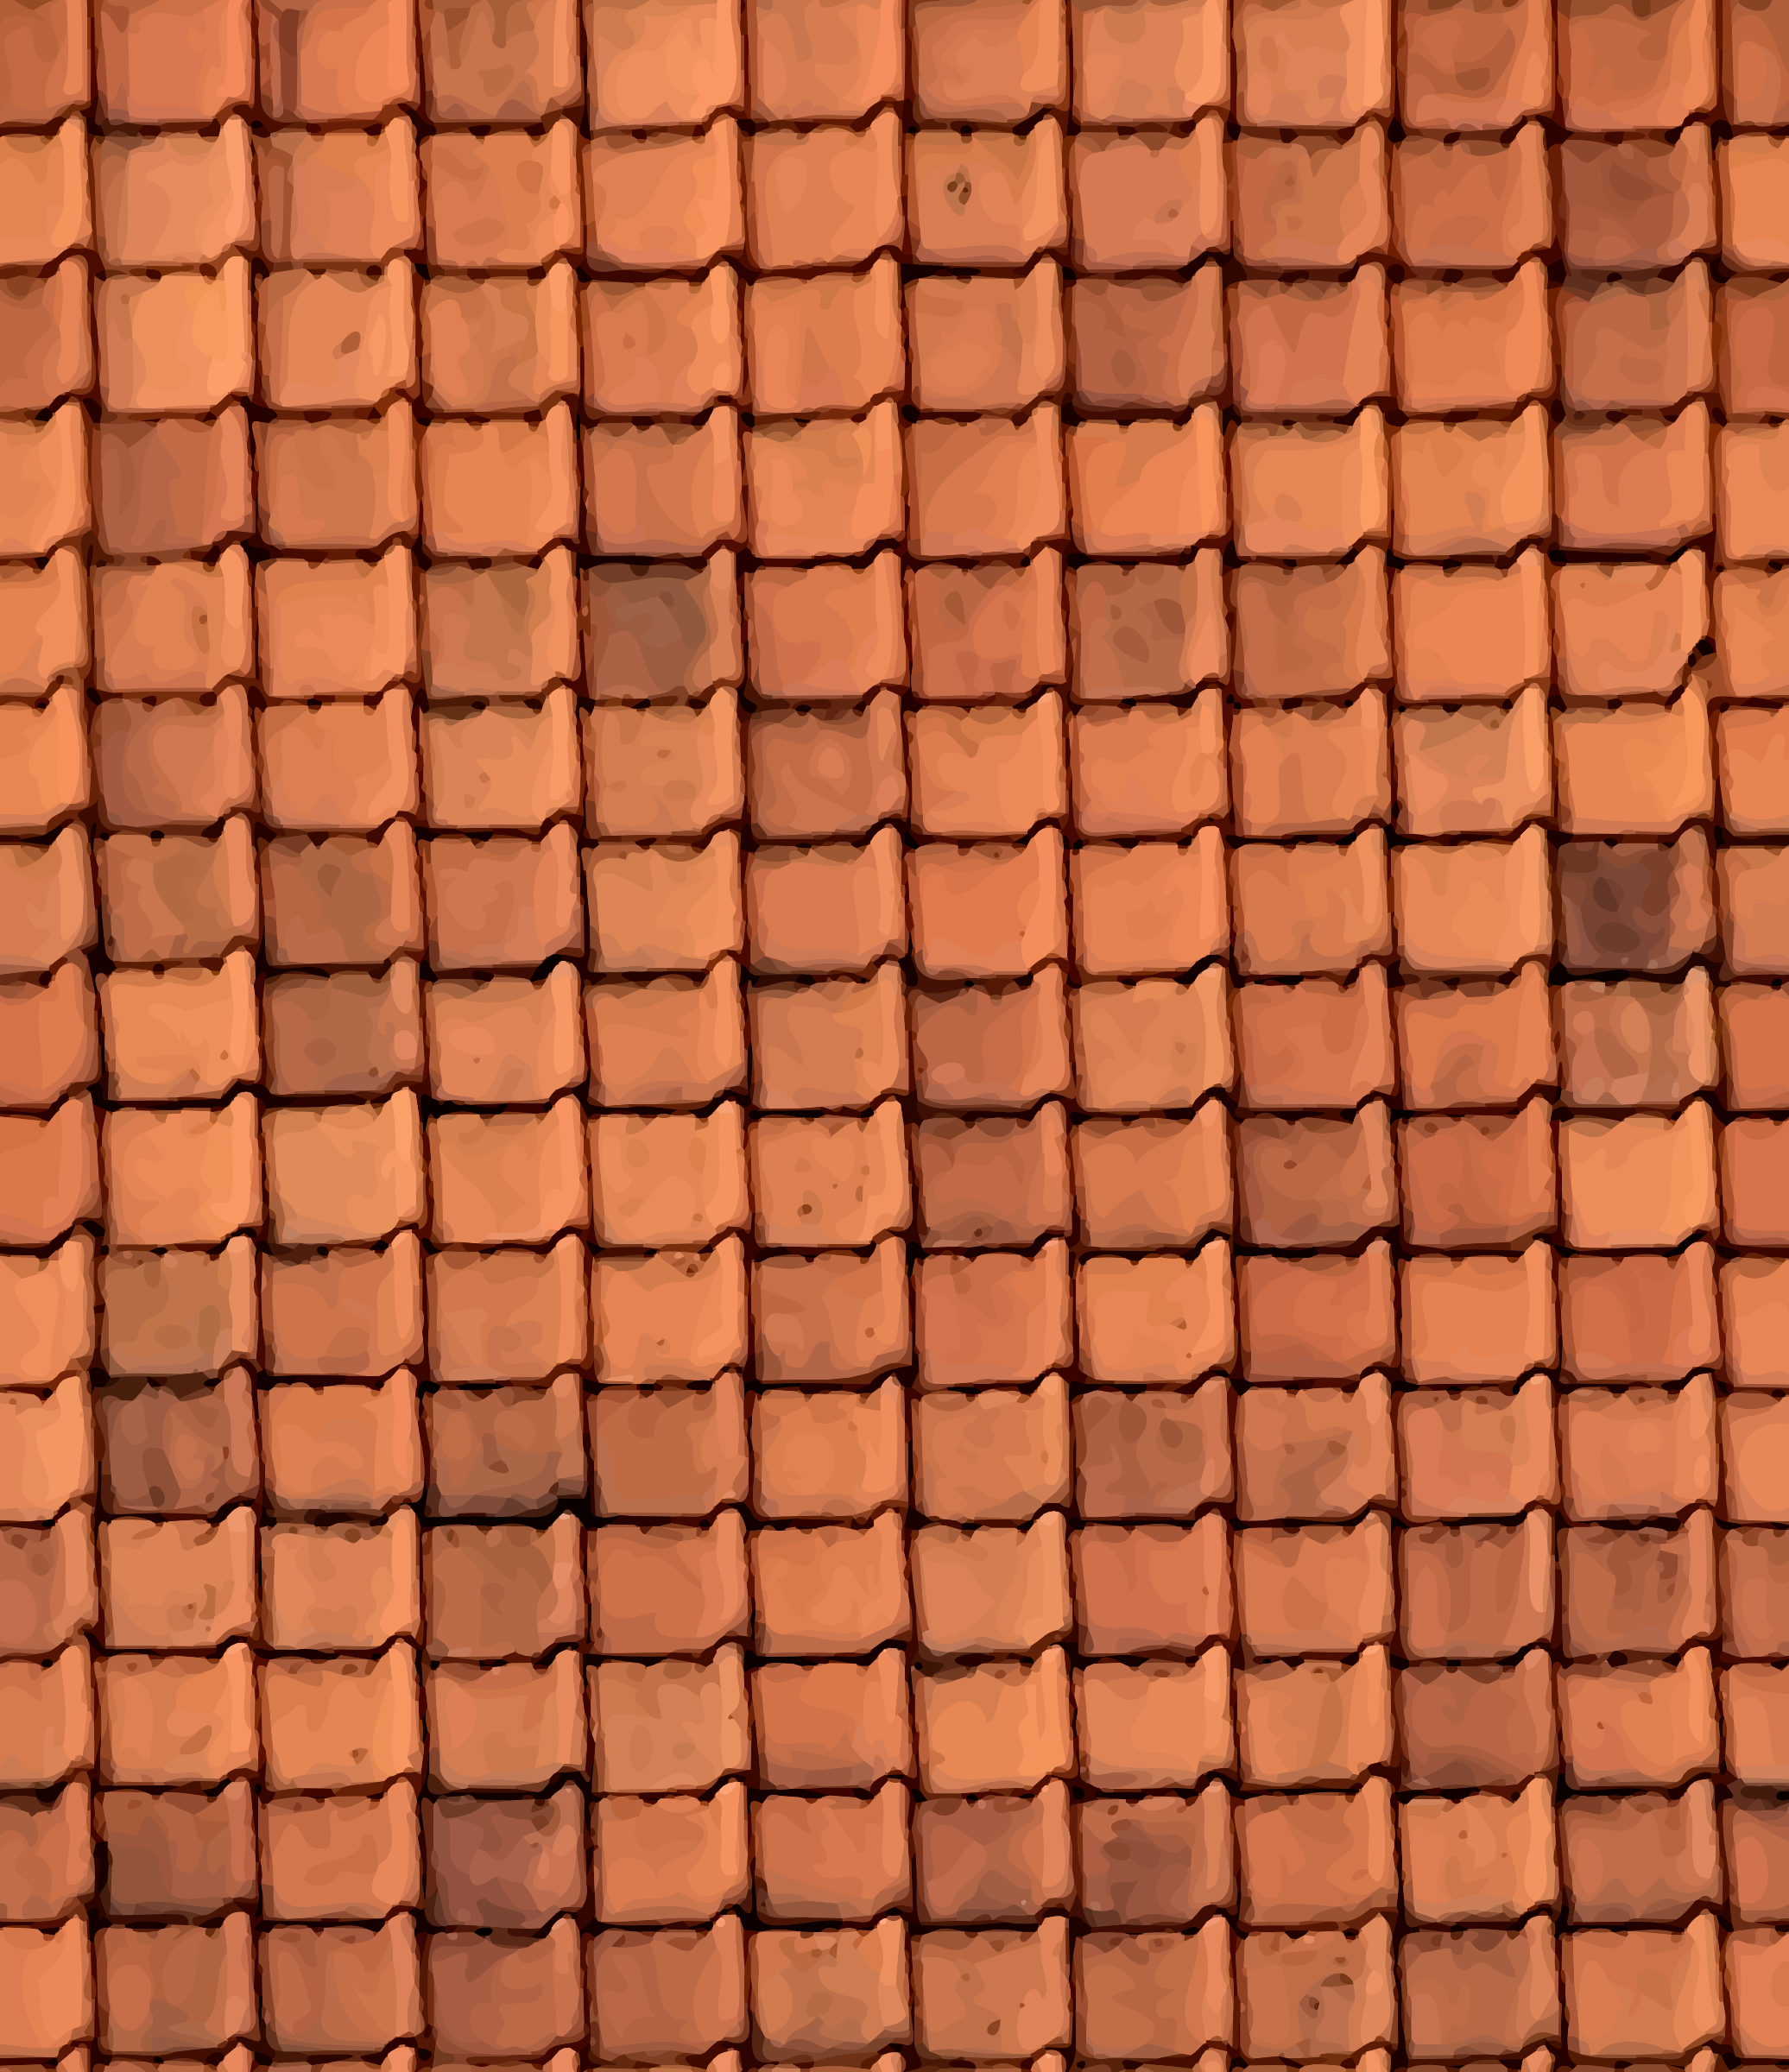 Clipart ribbed roof tiles for Roof tile patterns